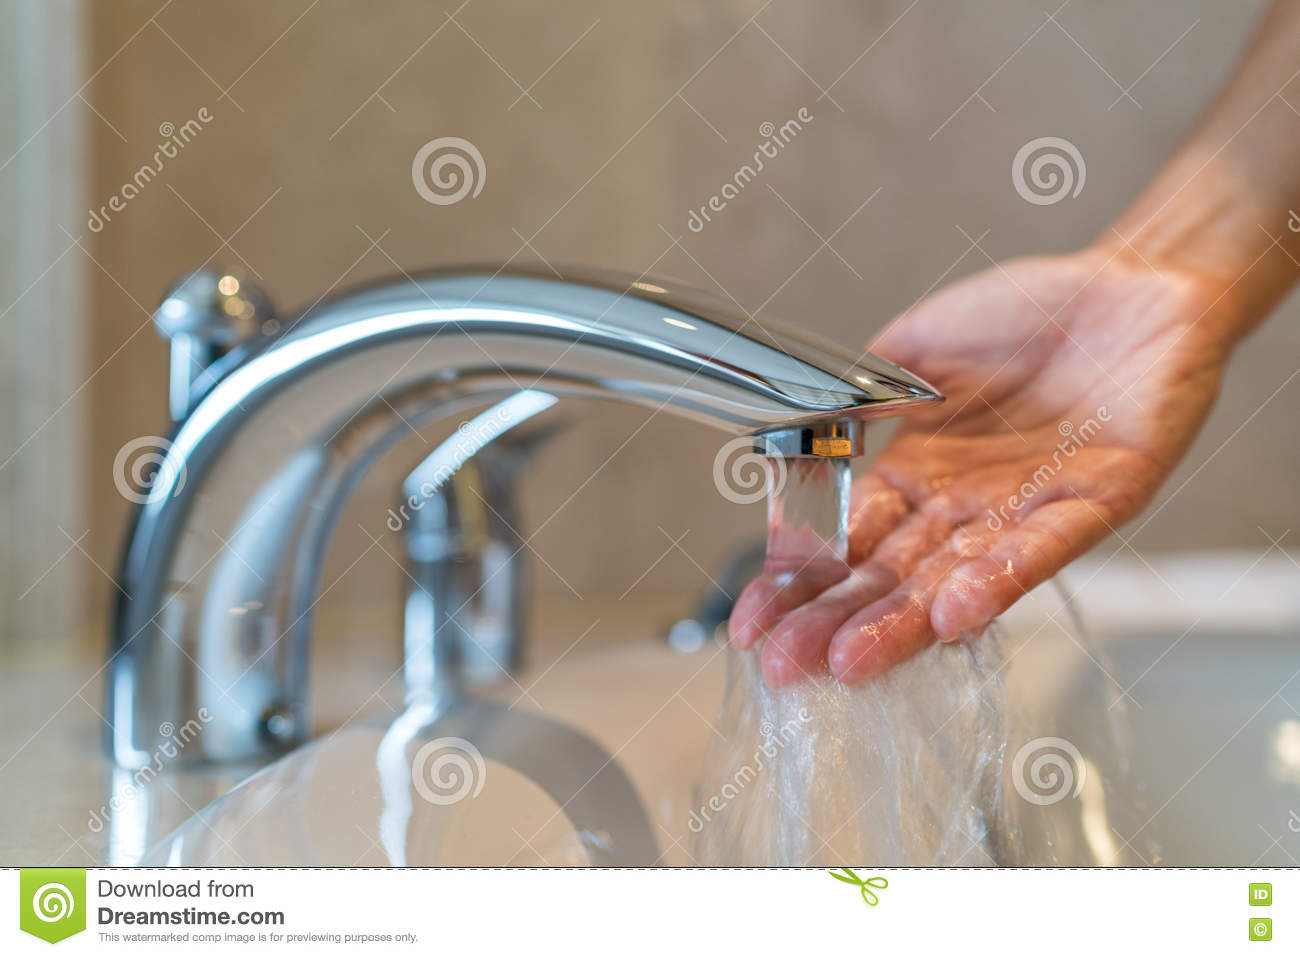 Woman taking home bath checking water temperature